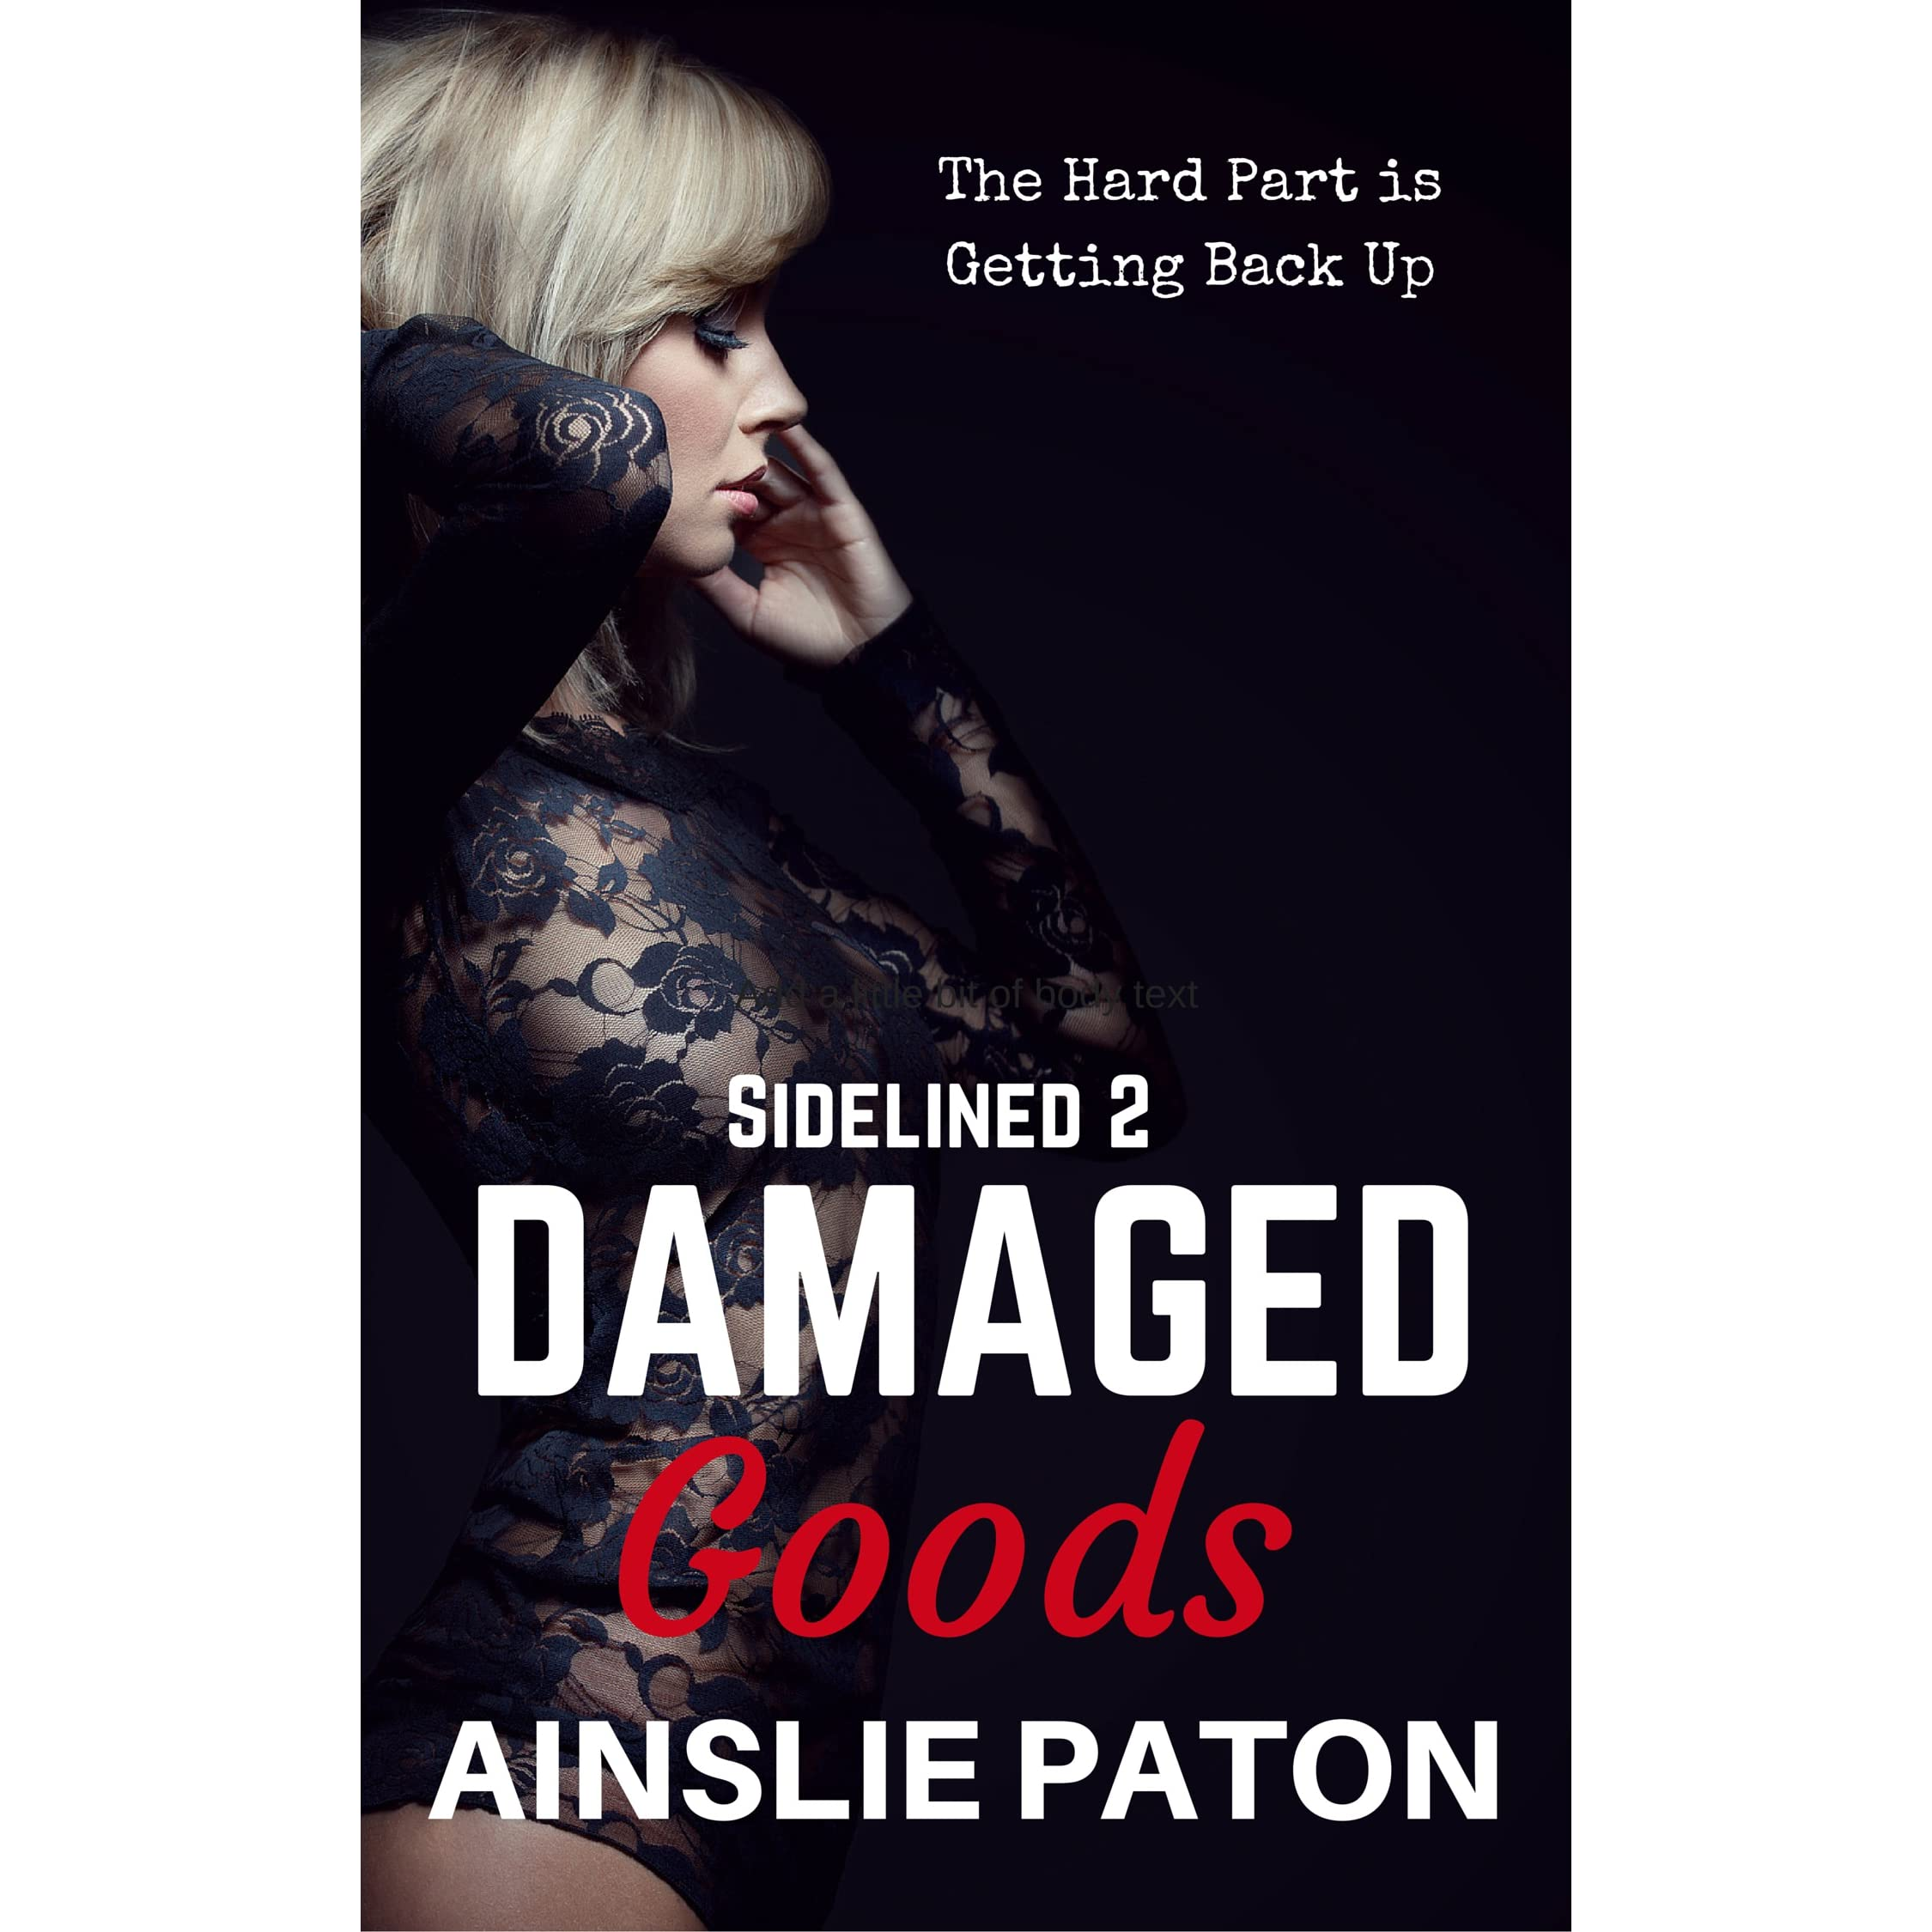 Damaged Goods (Sidelined #2) by Ainslie Paton